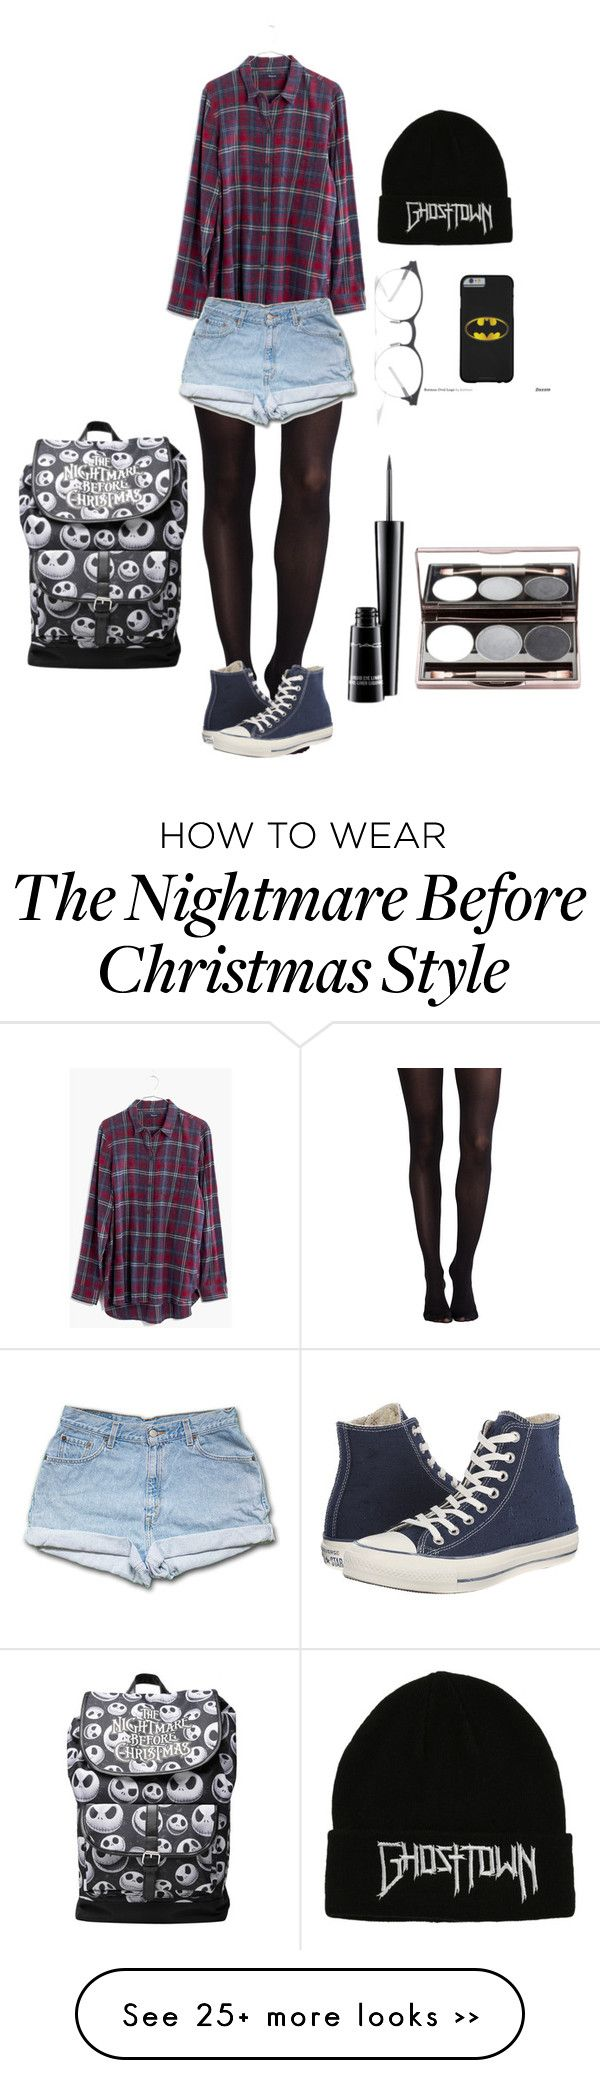 Grundge to the bone by onedelieber on Polyvore featuring mode, SPANX, Madewell, Converse, Mykita en MAC Cosmetics